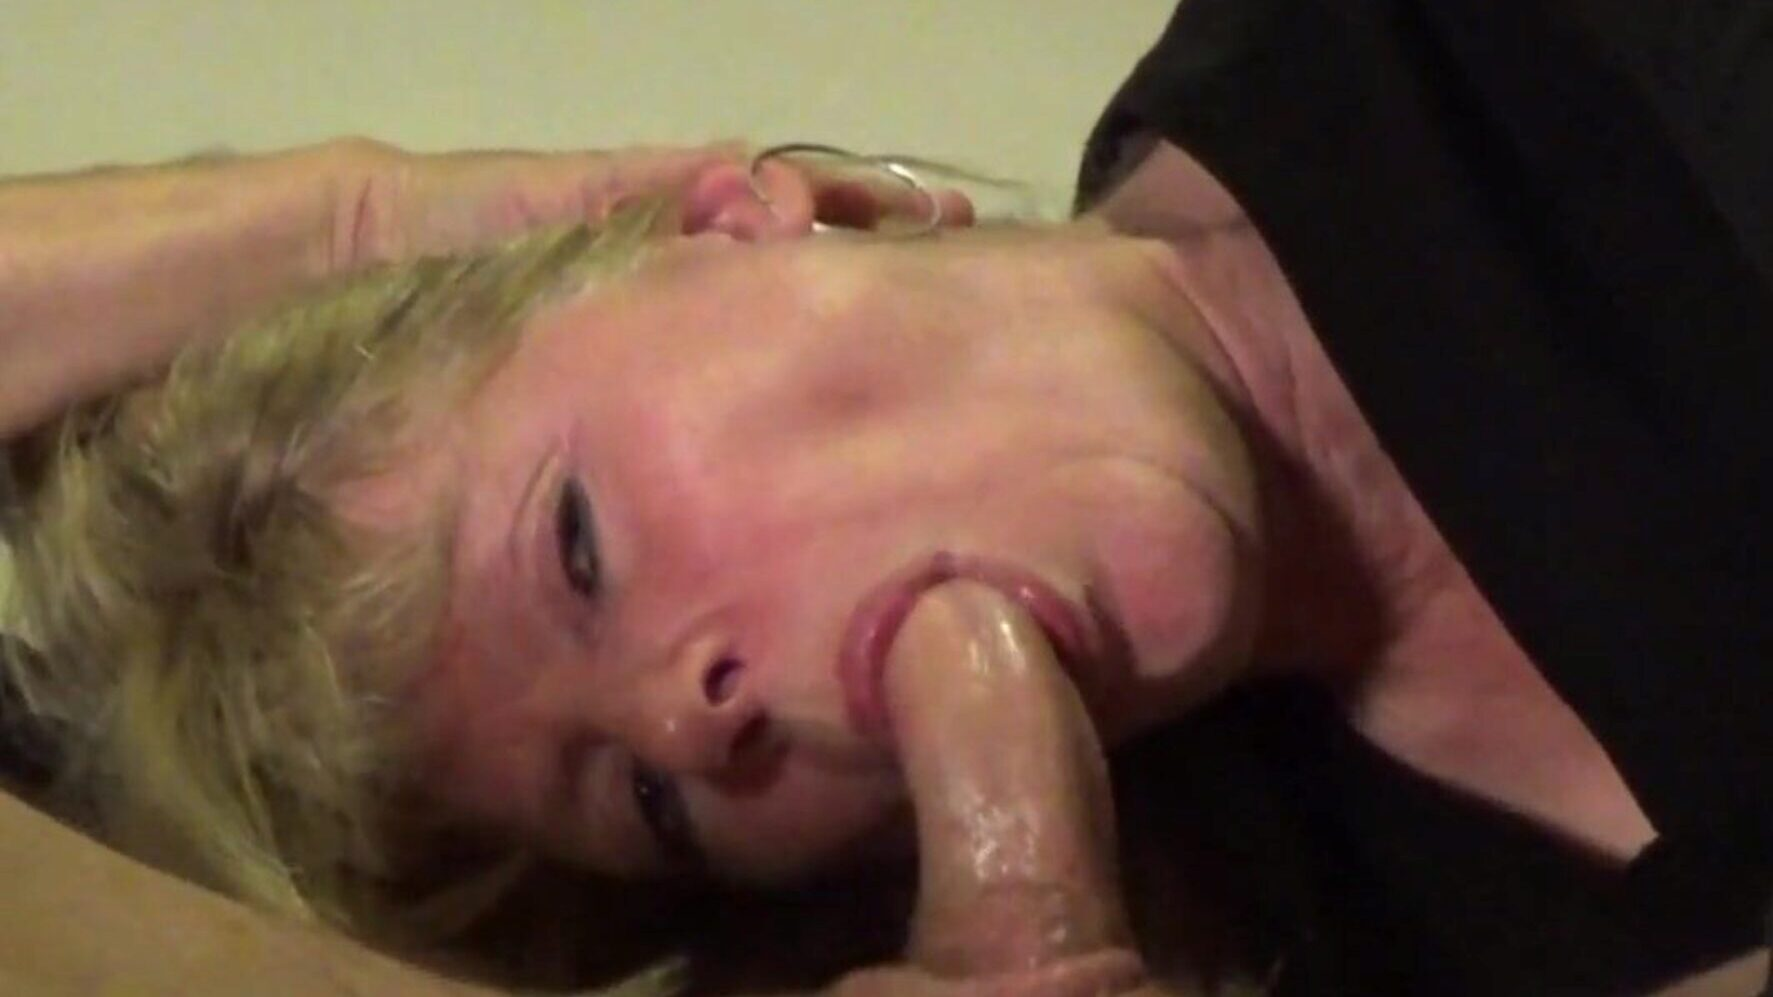 Mature Throat Fuck and Cum, Free Mature Xxx Free HD Porn 2c Watch Mature Throat Fuck and Cum movie on xHamster, the most good HD fuck-fest tube web resource with tons of free-for-all Mature Xxx Free & Mature Tube Mobile pornography vids